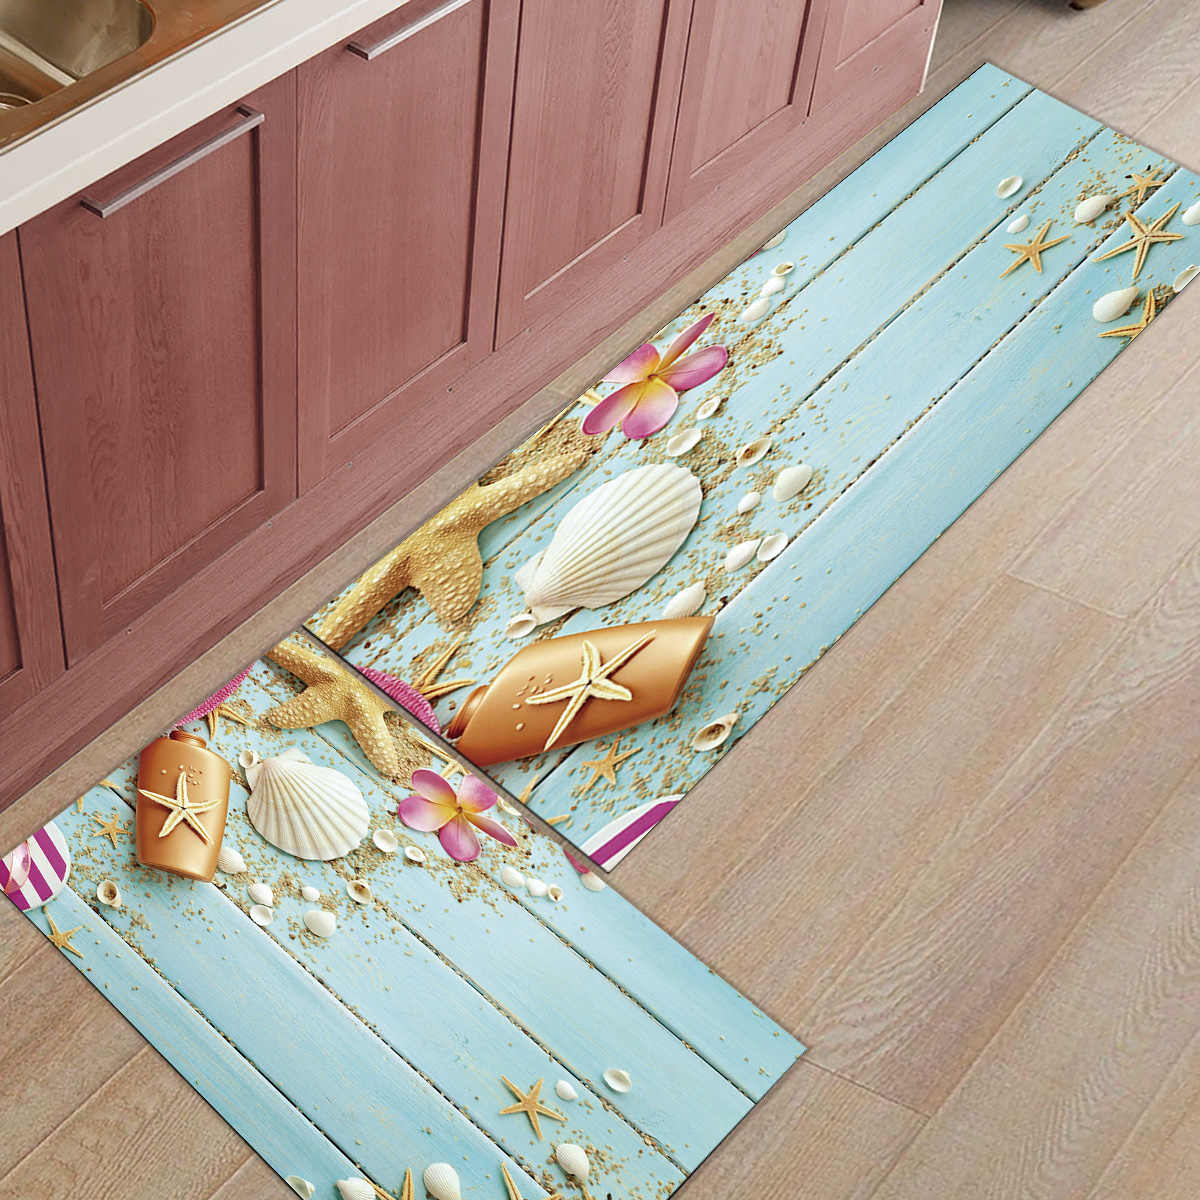 Shell Starfish Flowers Under A Pet Water Food Bowl Boot Shoes Scraper Accessory Sets Floor Carpets Area Runners Personalized